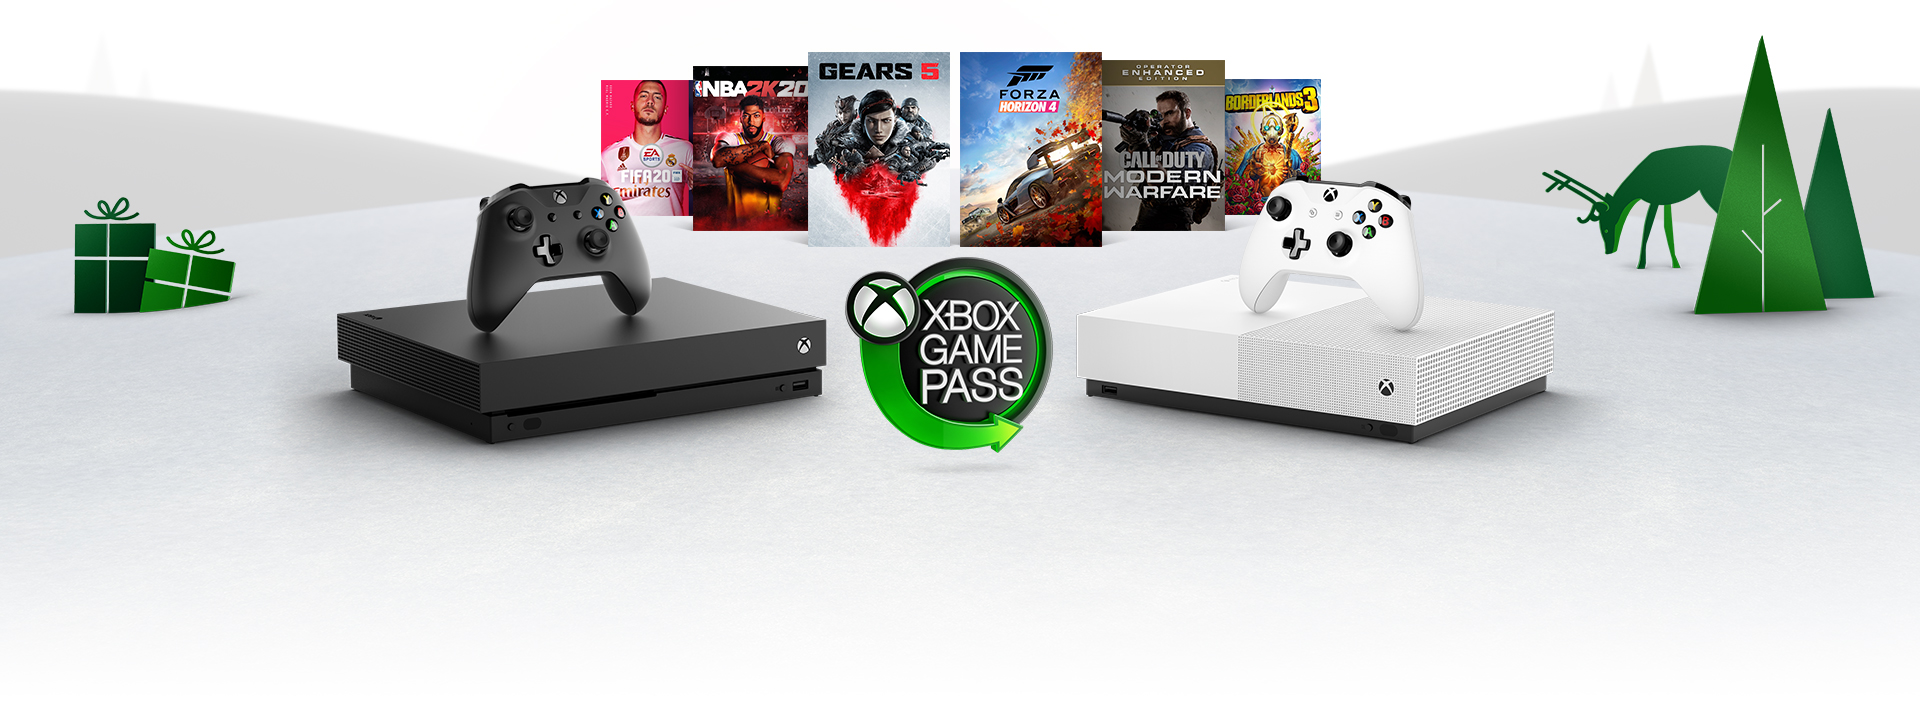 Various Xbox products on a festive background. The lockup includes a black Xbox One X, white Xbox One S, as well as packshots of Forza Horizon 4, The Outer Worlds, Gears 5 and Borderlands 3. All the products surround the Xbox Game Pass logo.